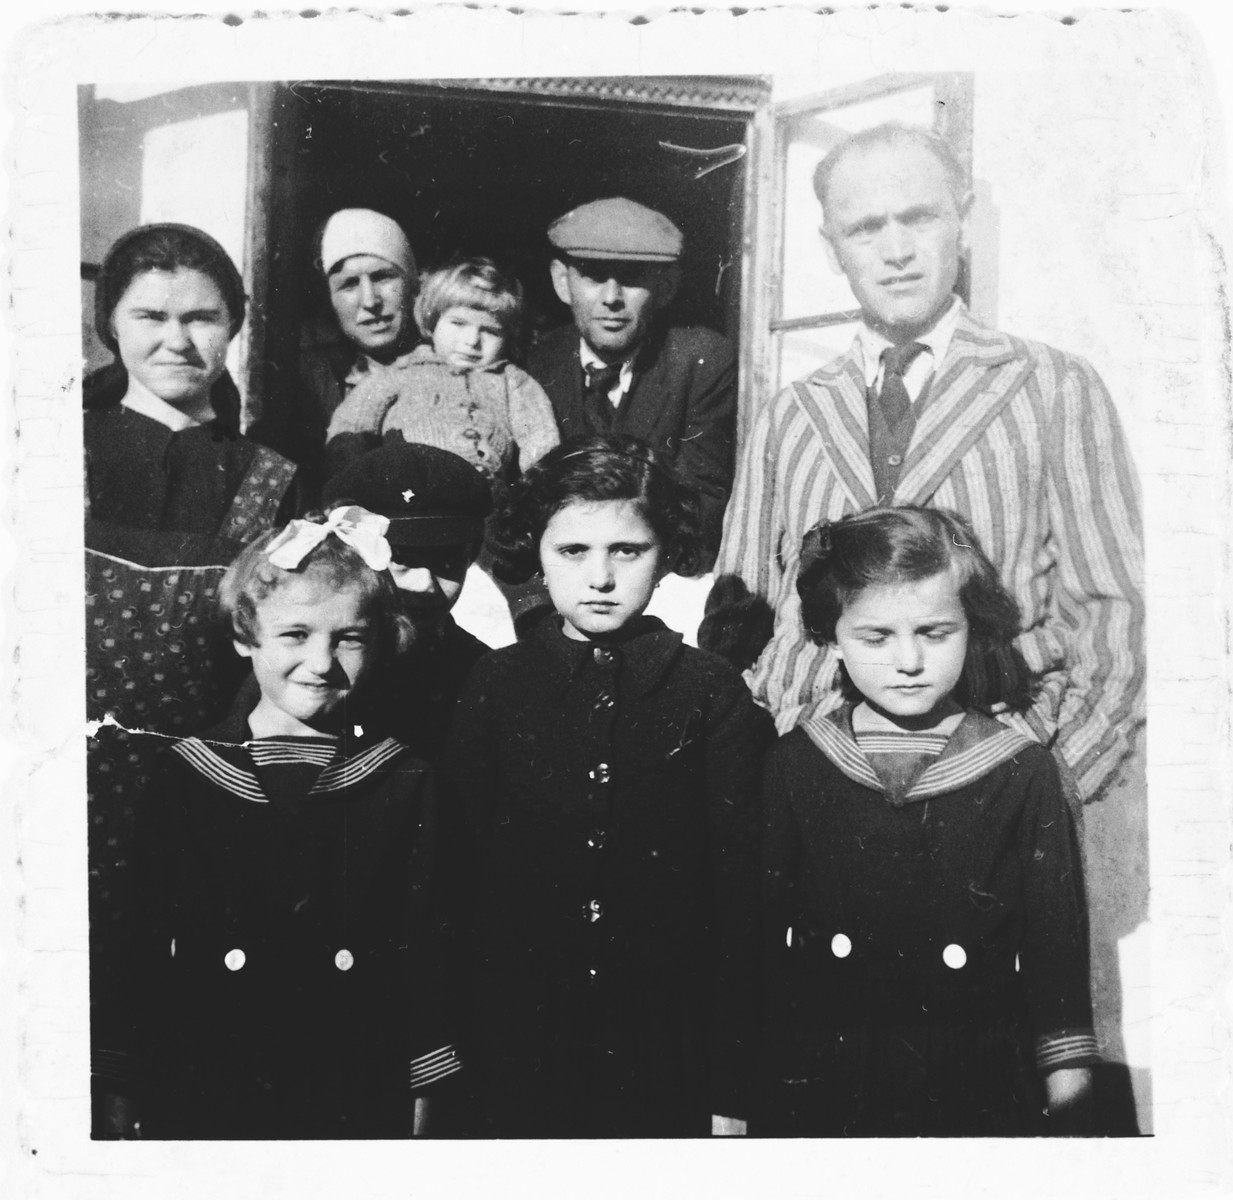 Group portrait of members of a Jewish family outside their home in Bilki.  Pictured in the front row from left to right are: Violet, Magdalena and Hana Mermelstein.  In the top row are: unknown, Bella, Edward, Ludwig and Meyer Mermelstein.